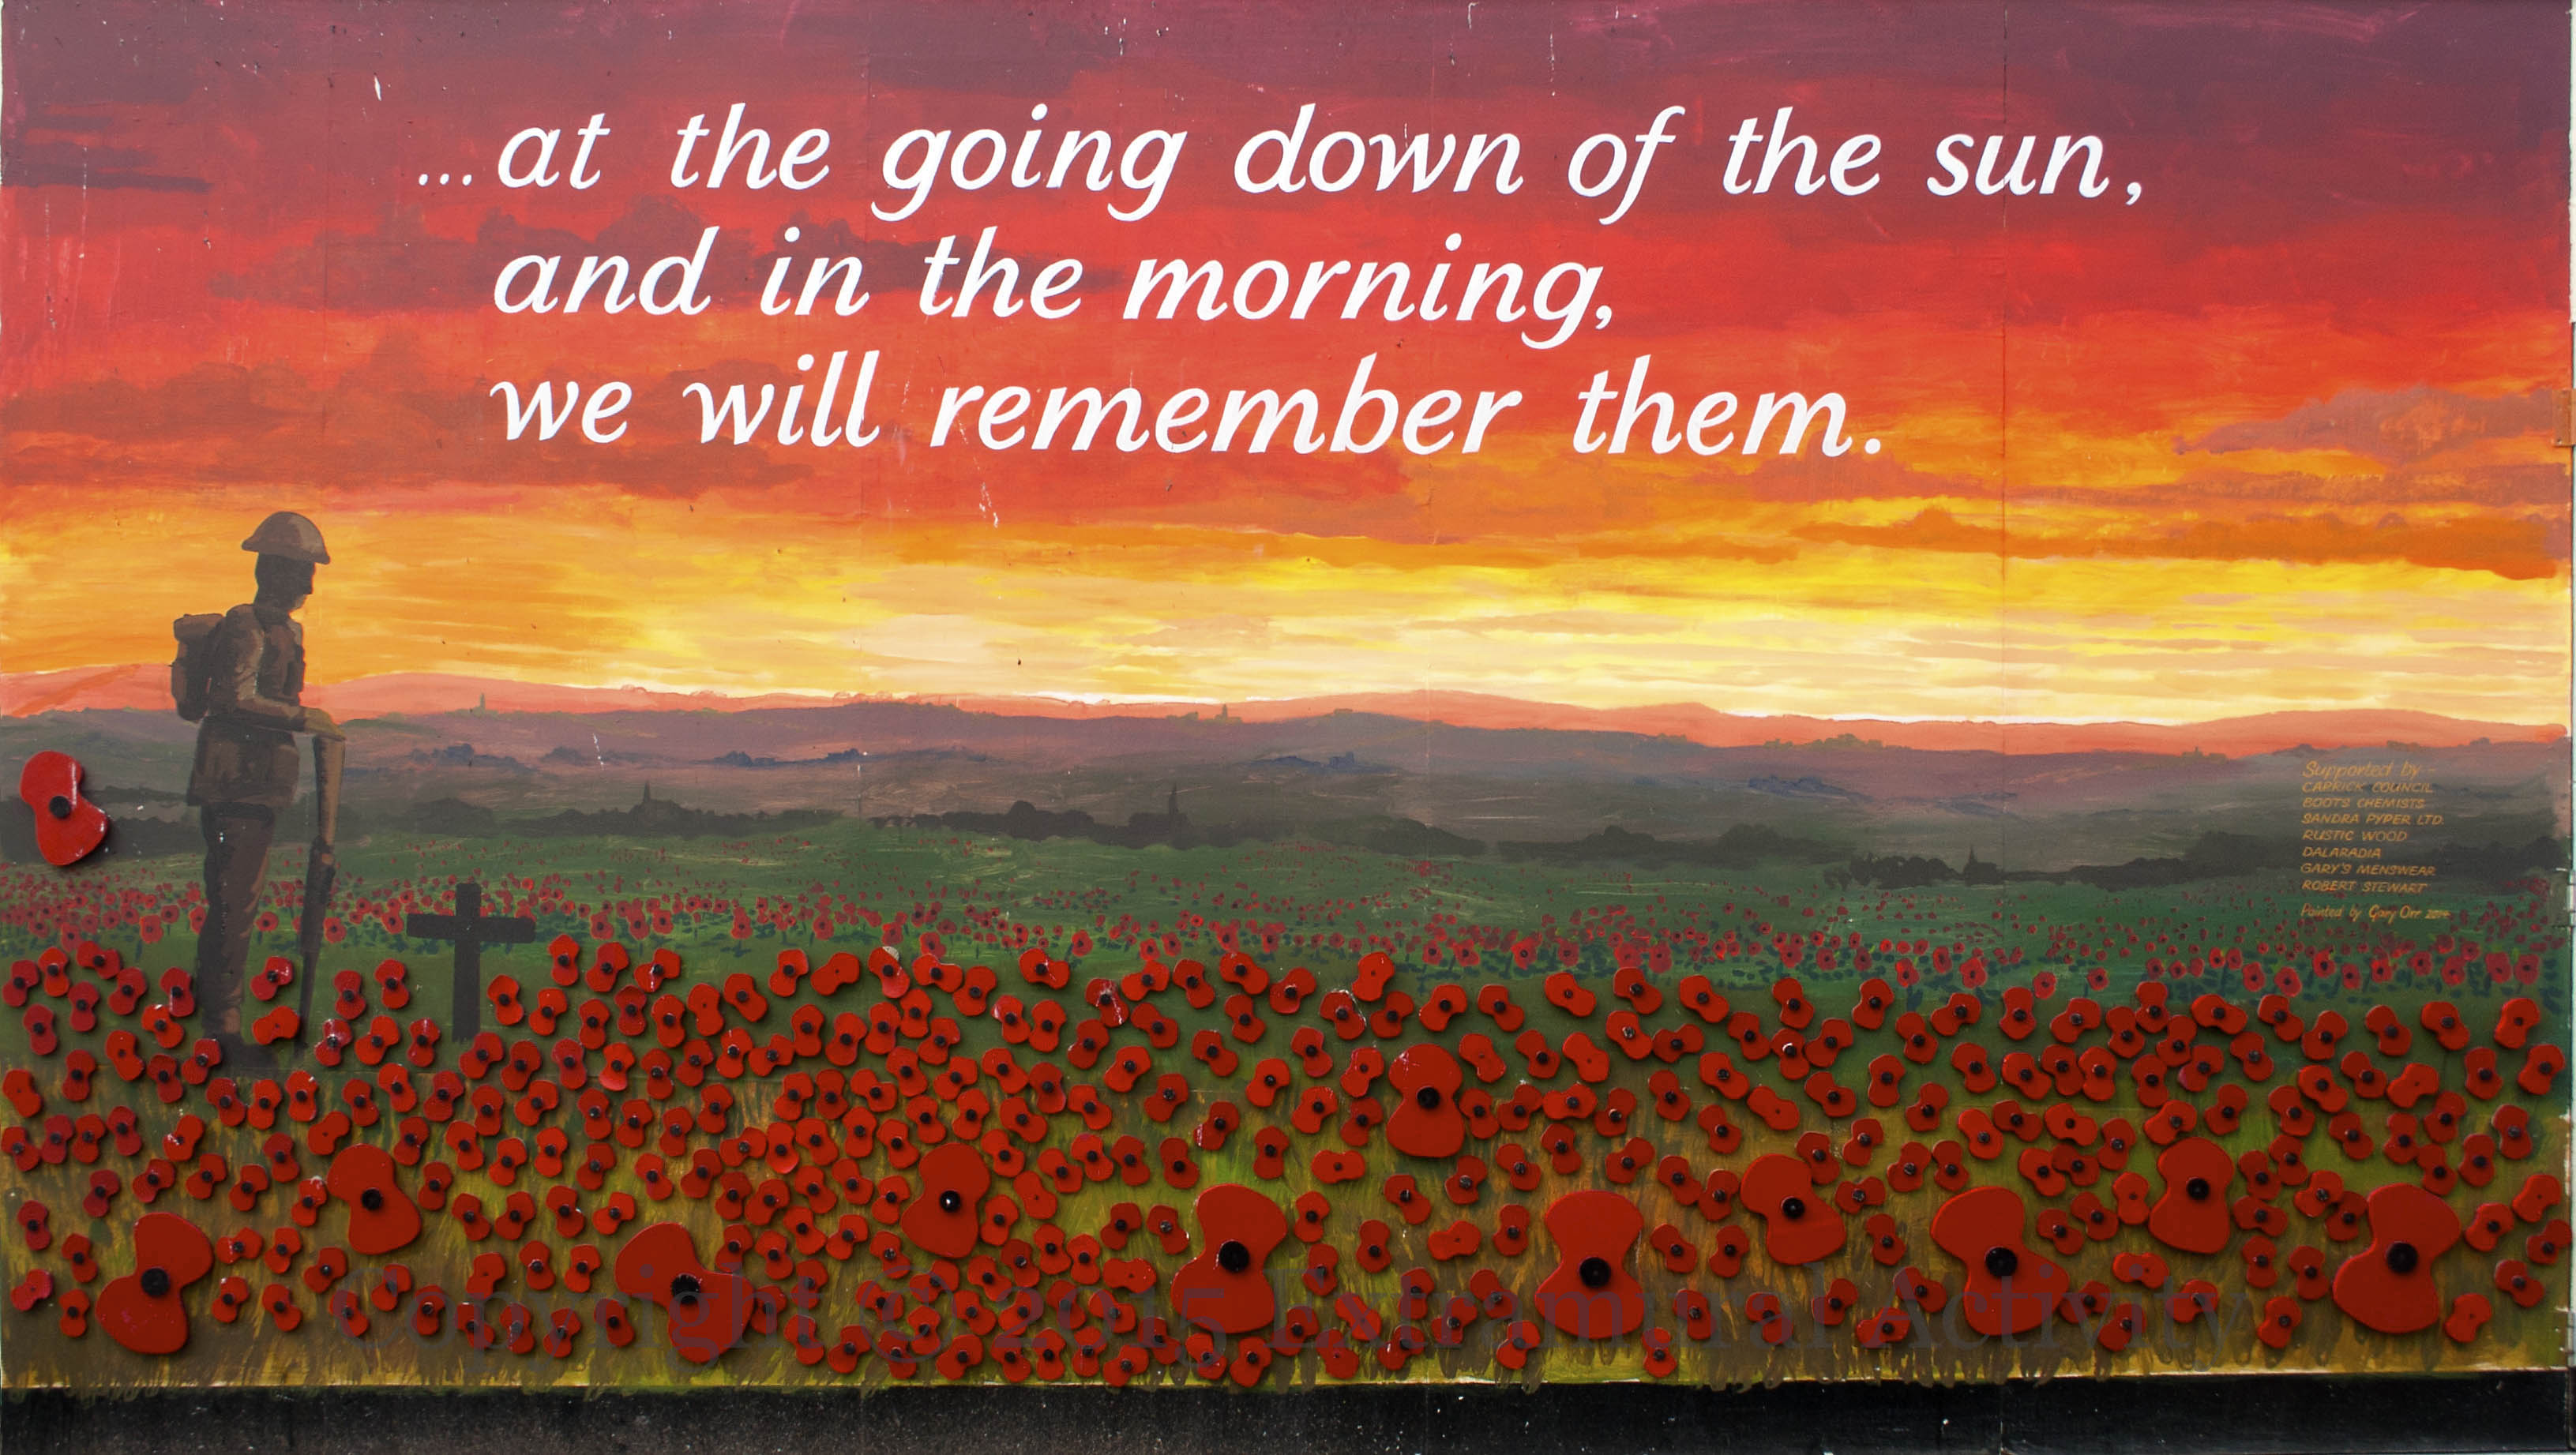 at the going down of the sun - photo #2